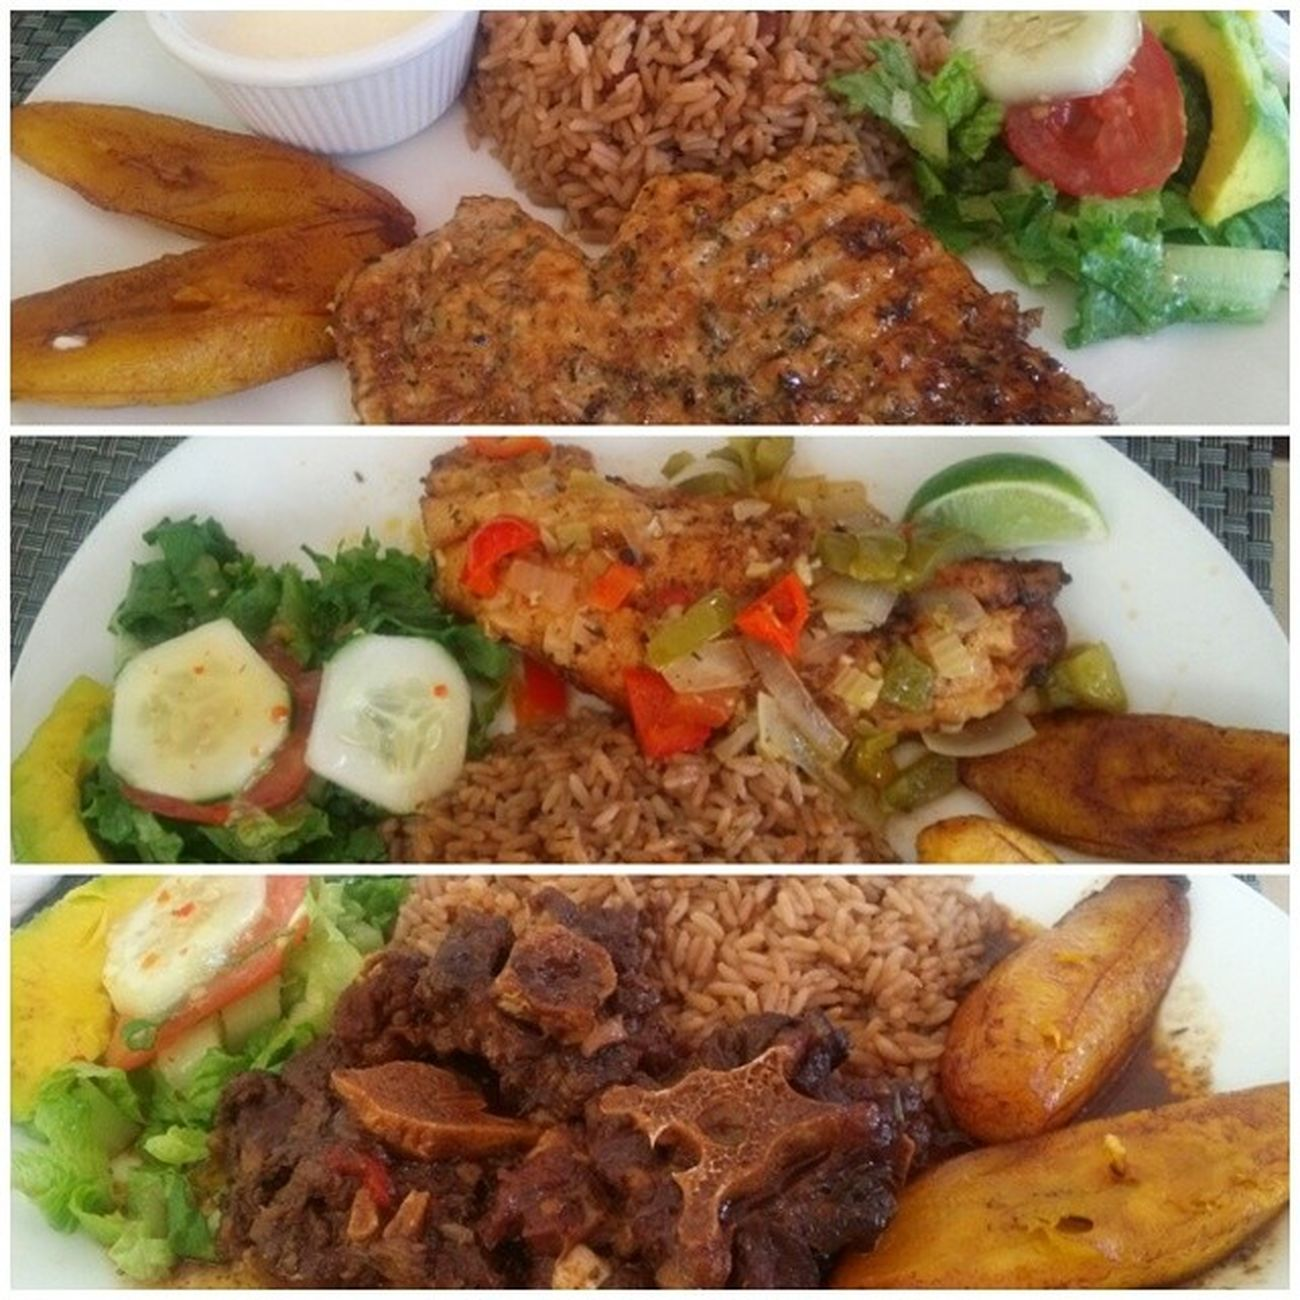 Rice & peas, fry plantain, salade. Oxtail FiletSnapper Grilledchickenbreast